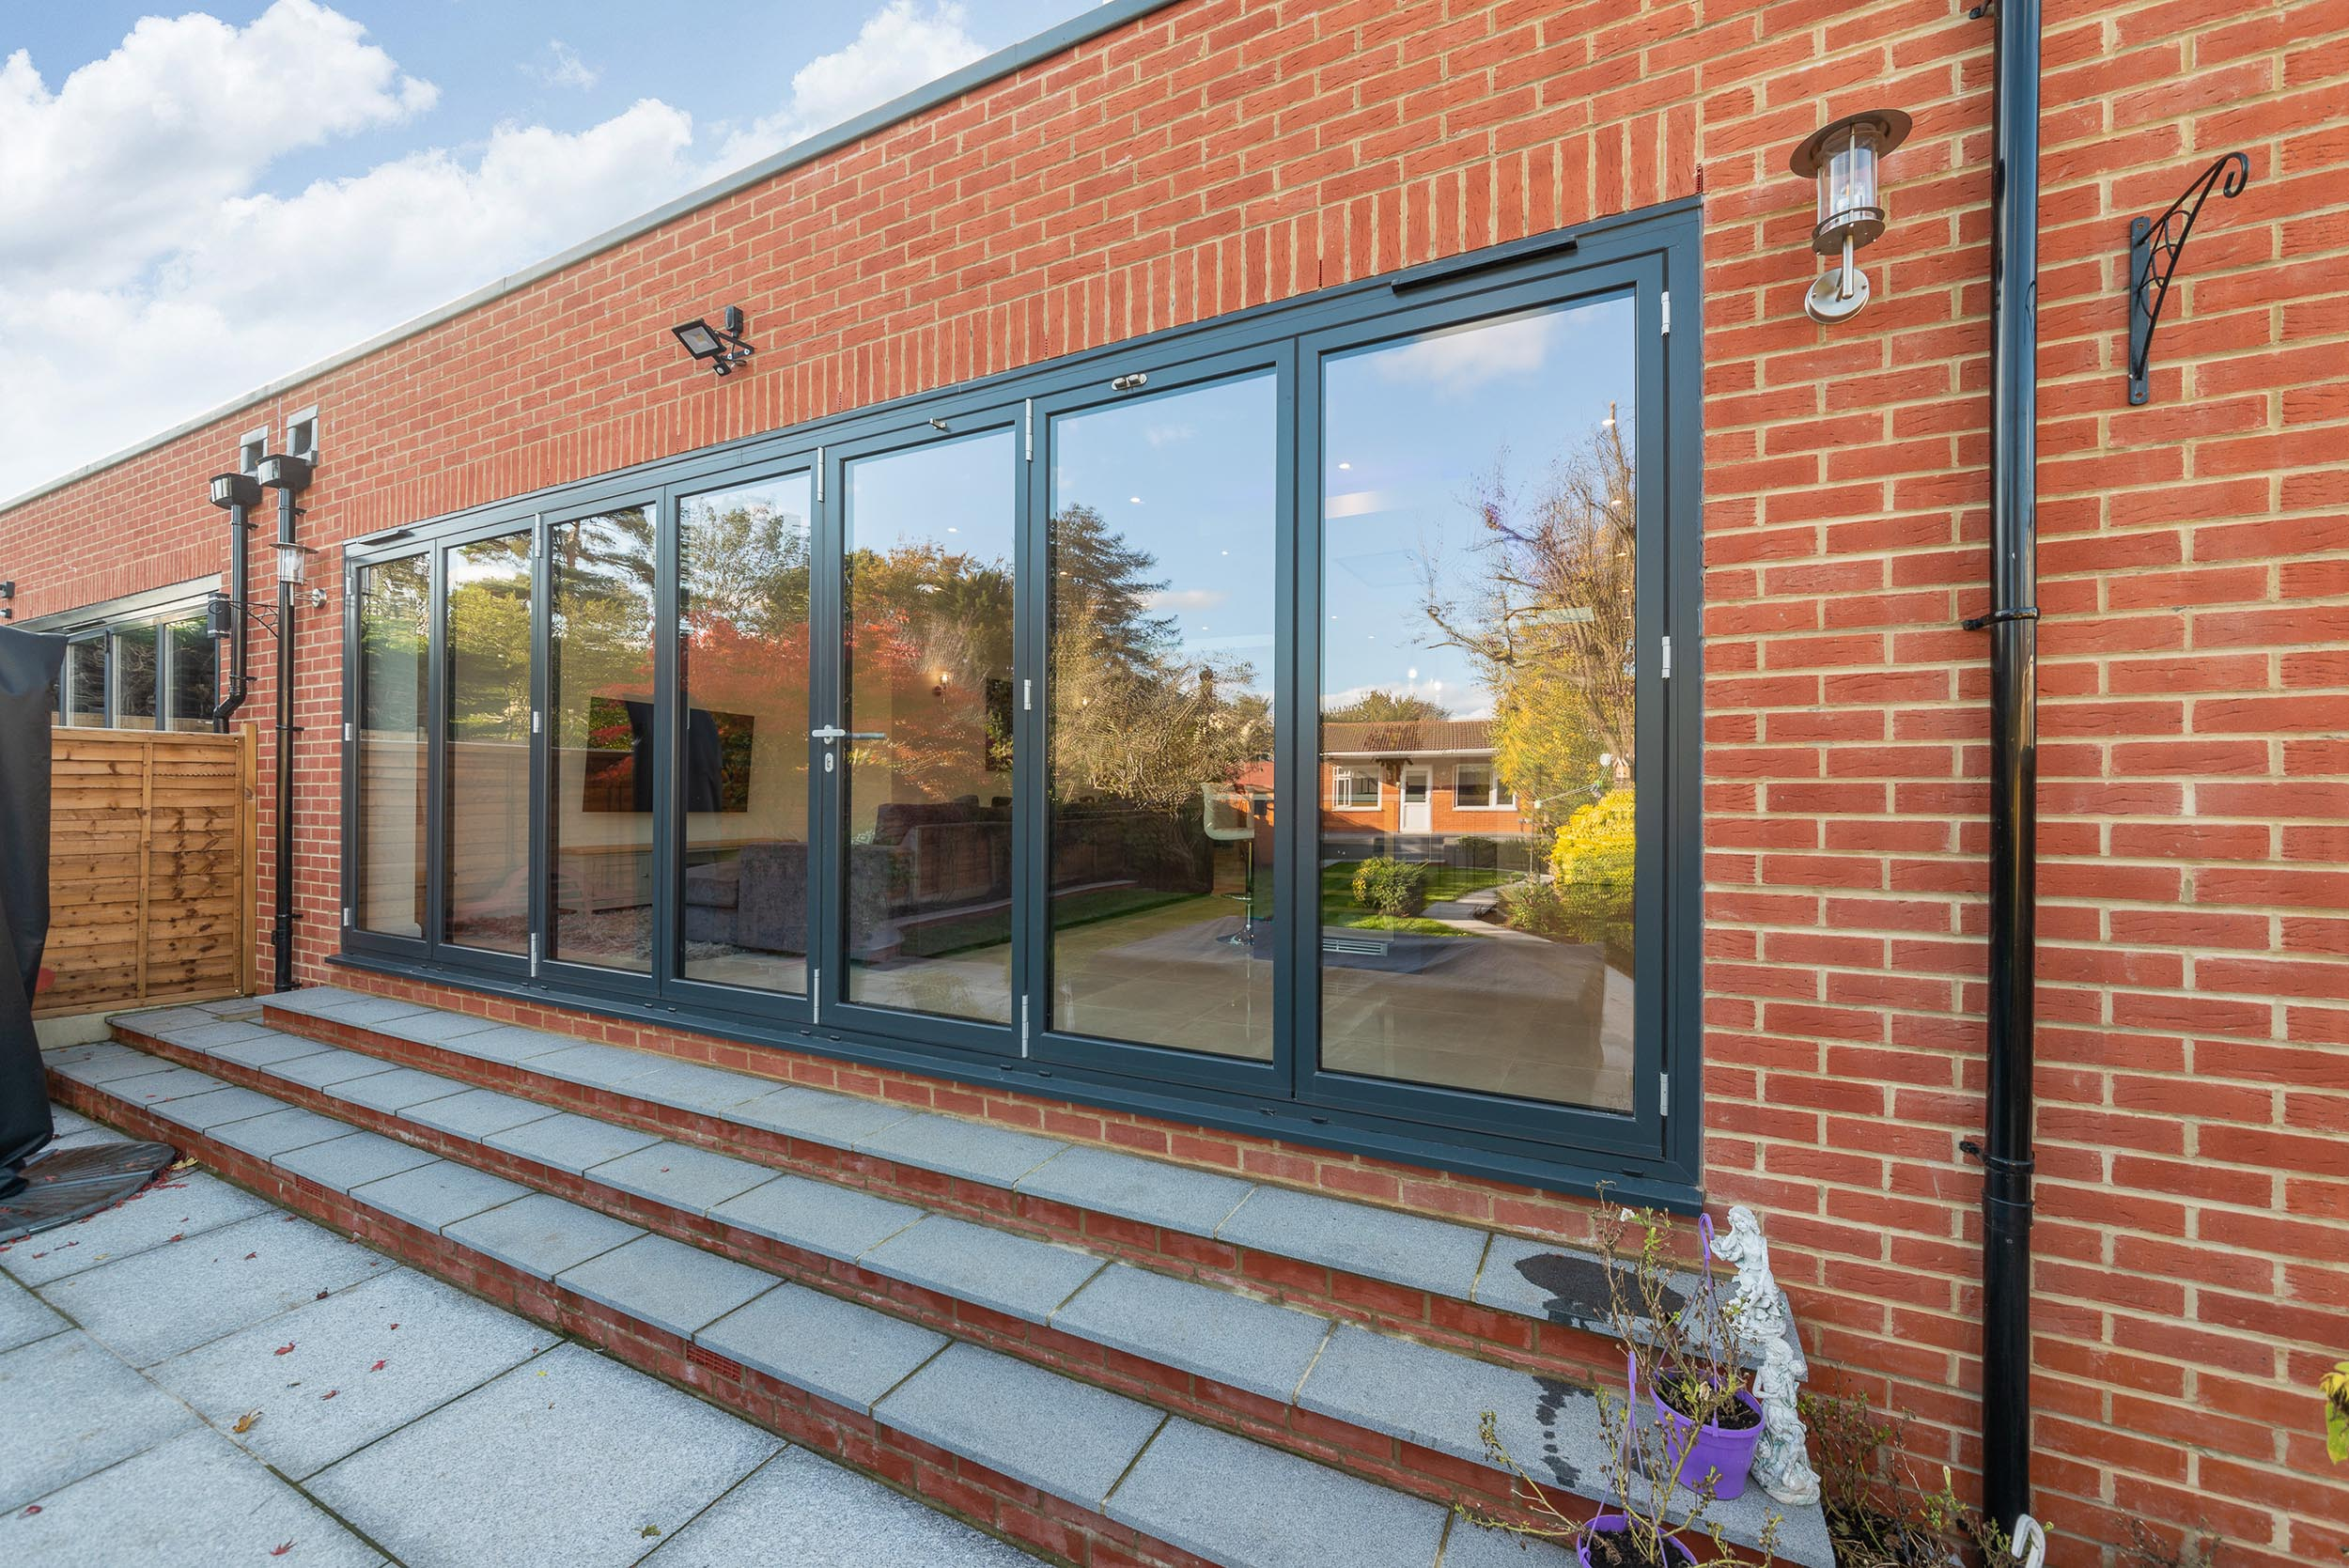 61-and-63-Wades-Hill-N21-1BD-Small-Res-5